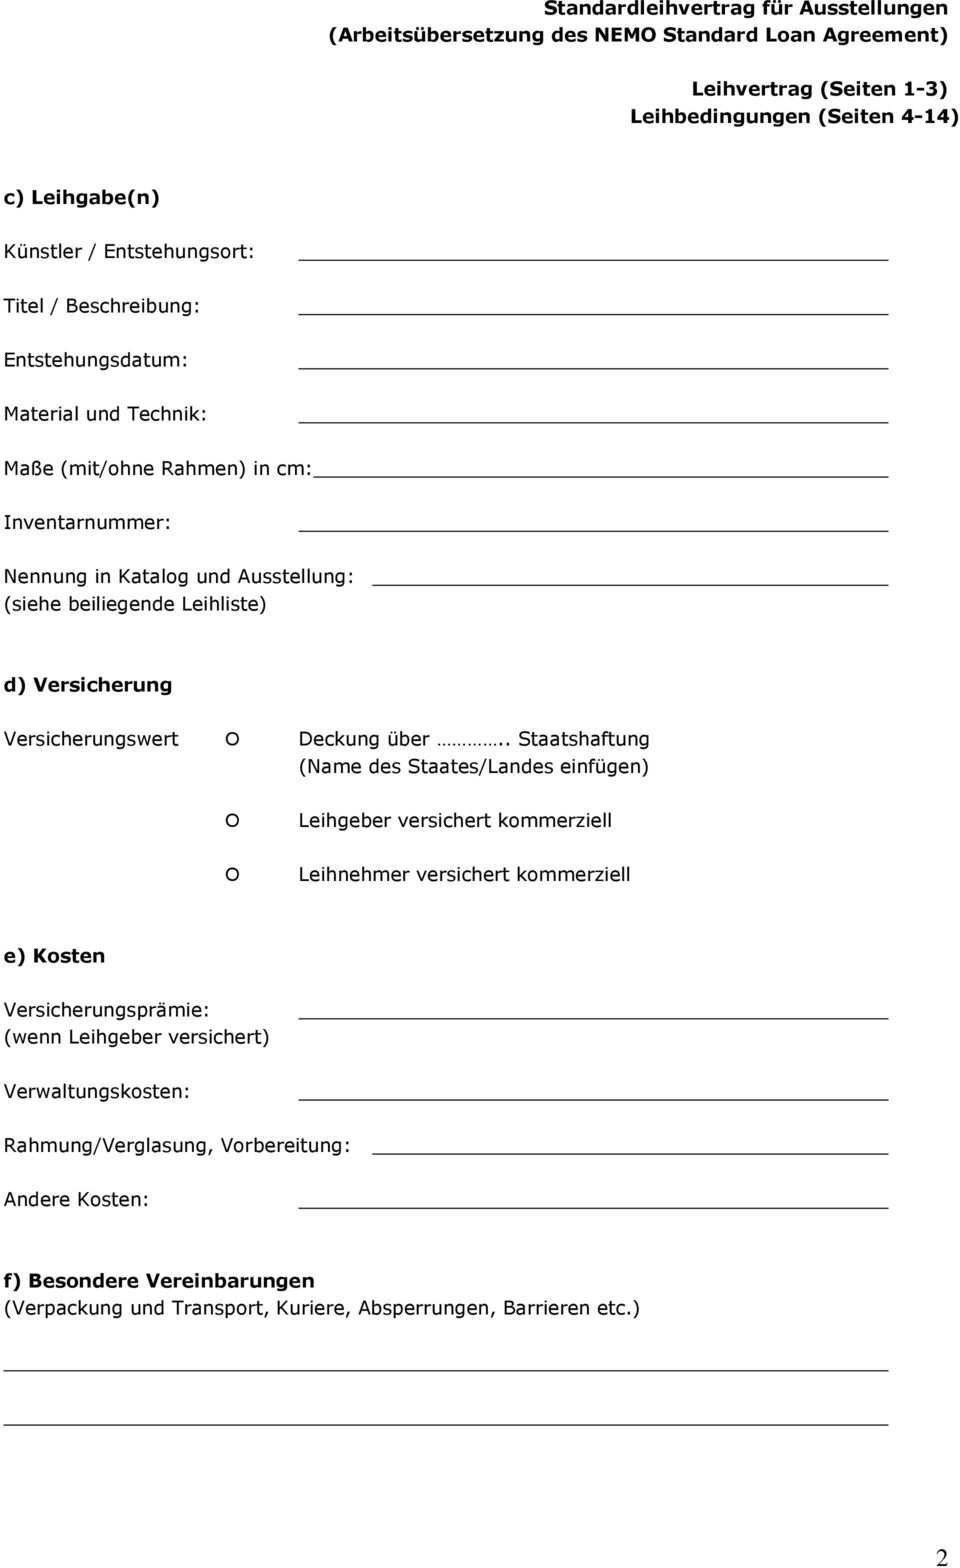 Leihvertrag Standardleihvertrag Fur Ausstellungen Arbeitsubersetzung Des Nemo Standard Loan Agreement Pdf Free Download